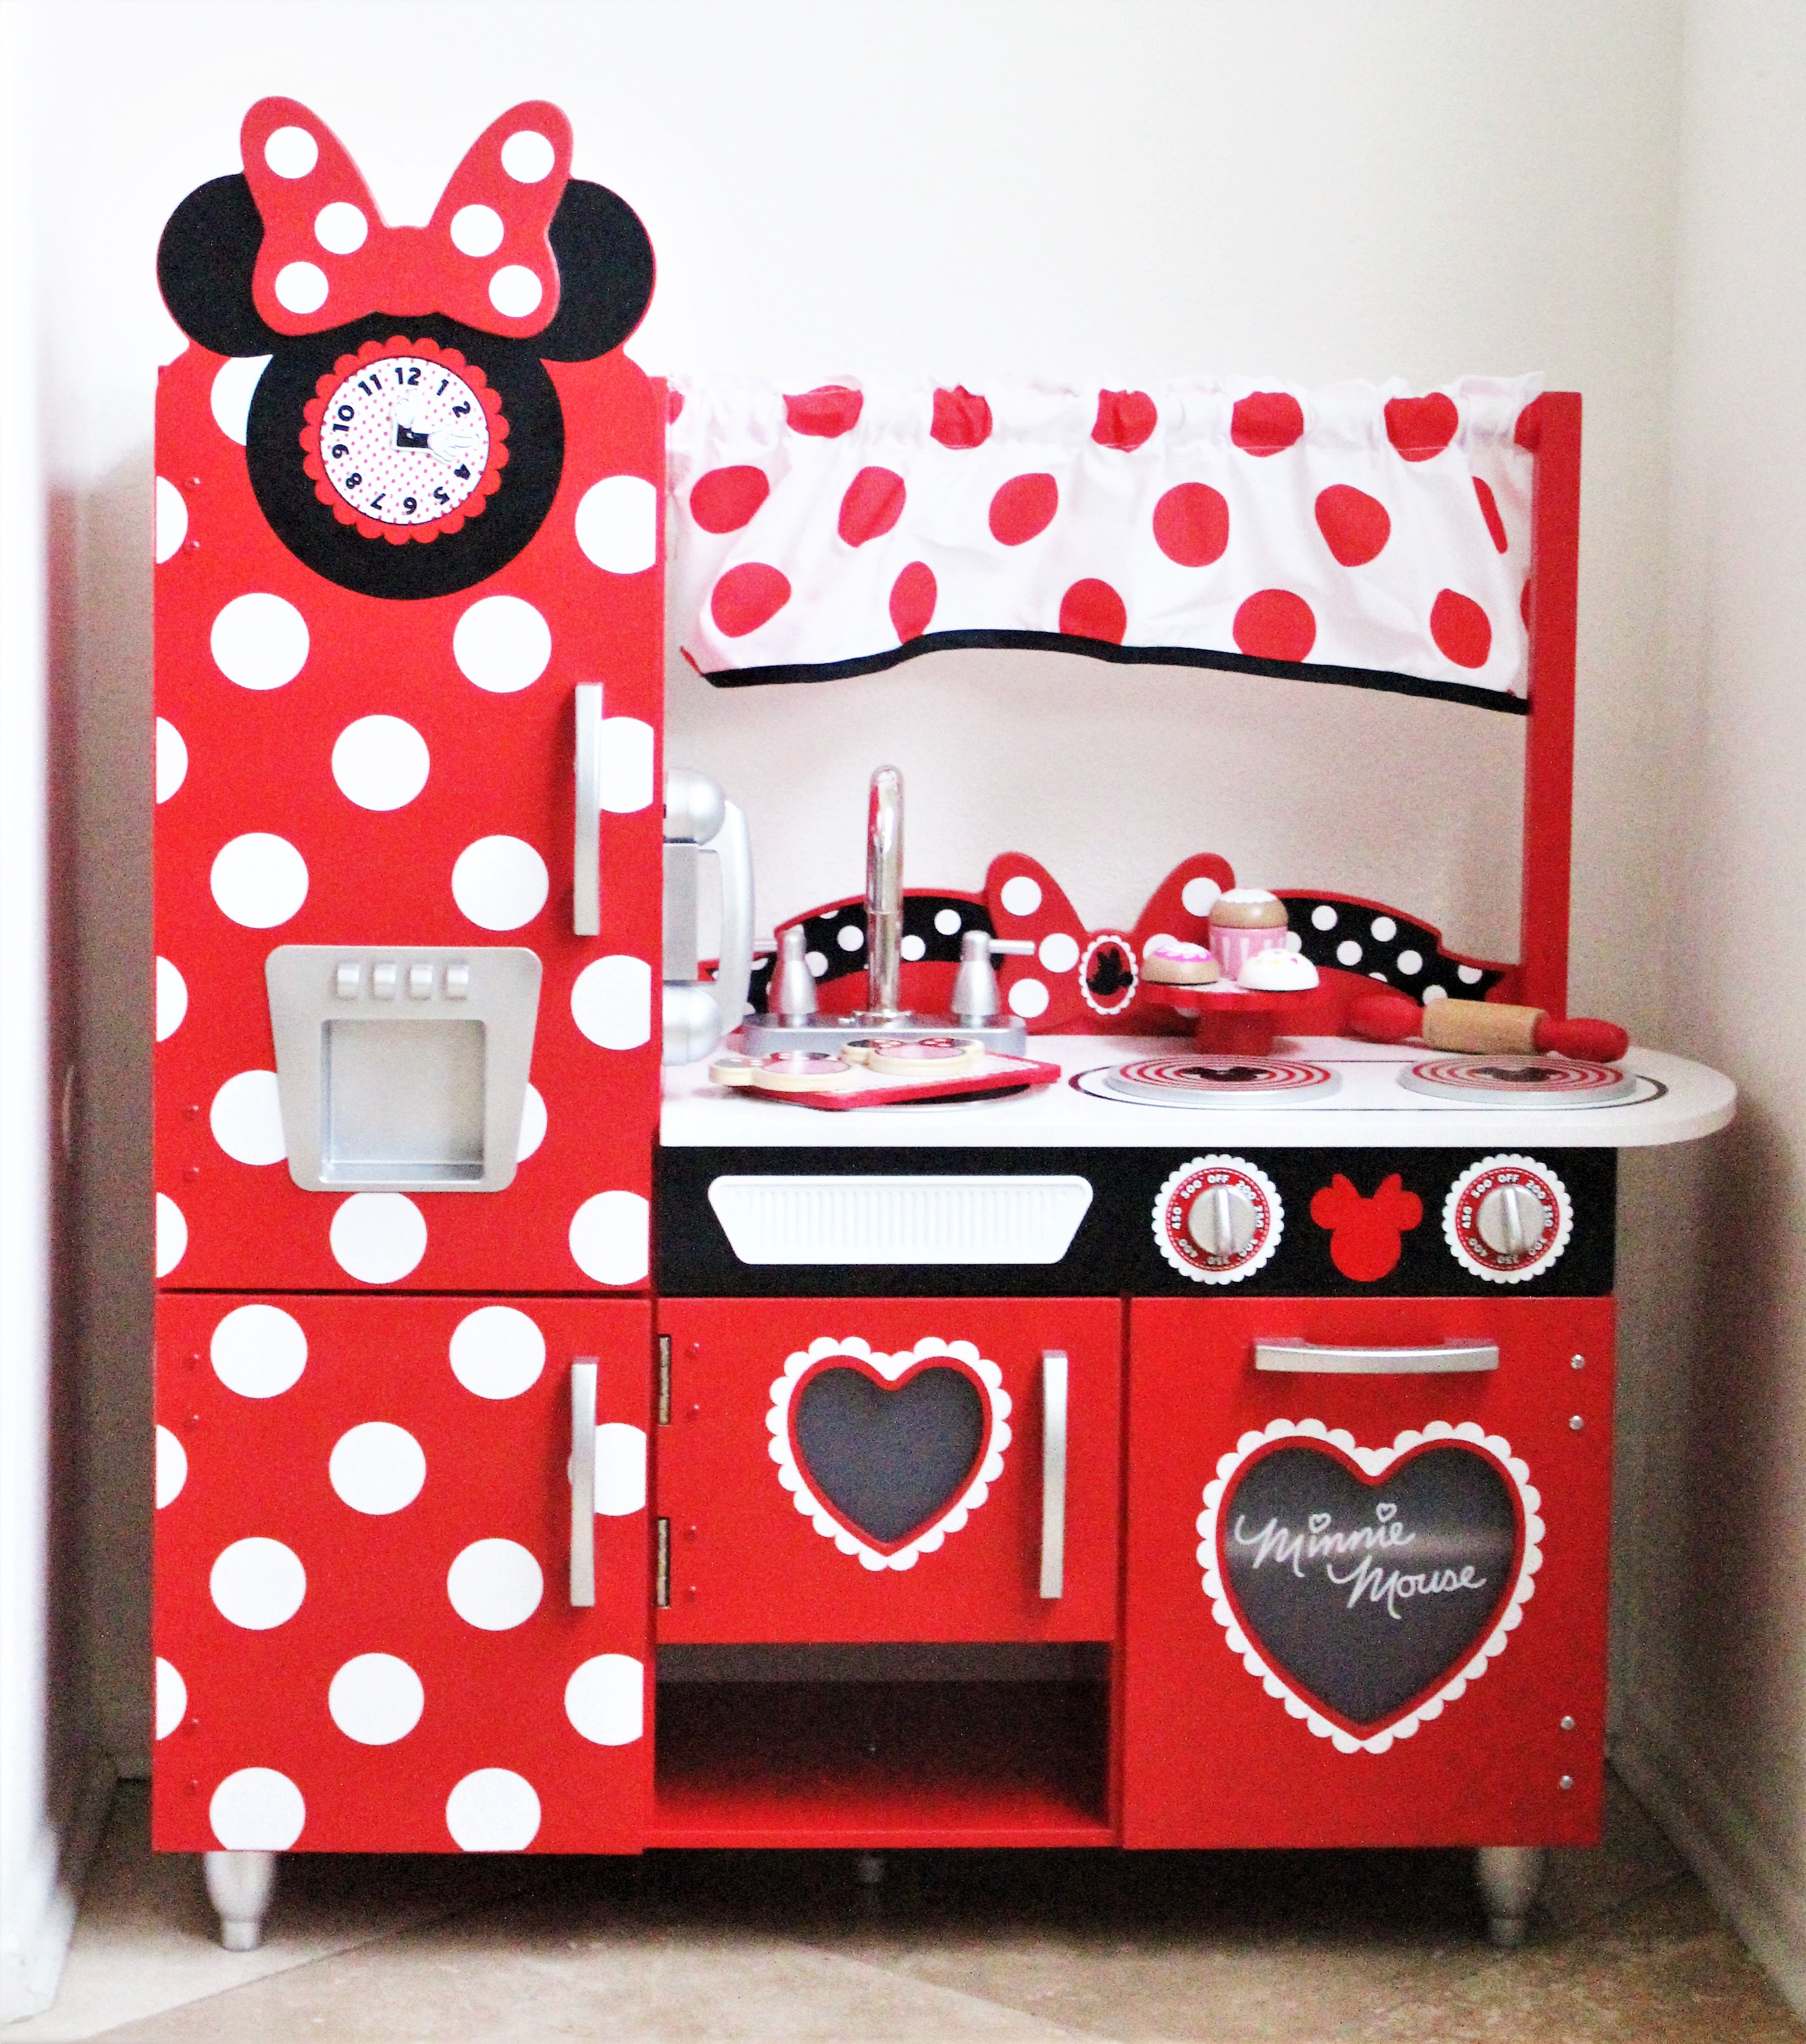 Minnie Mouse Küche The Play Kitchen Every Minnie Mouse Fan Needs The